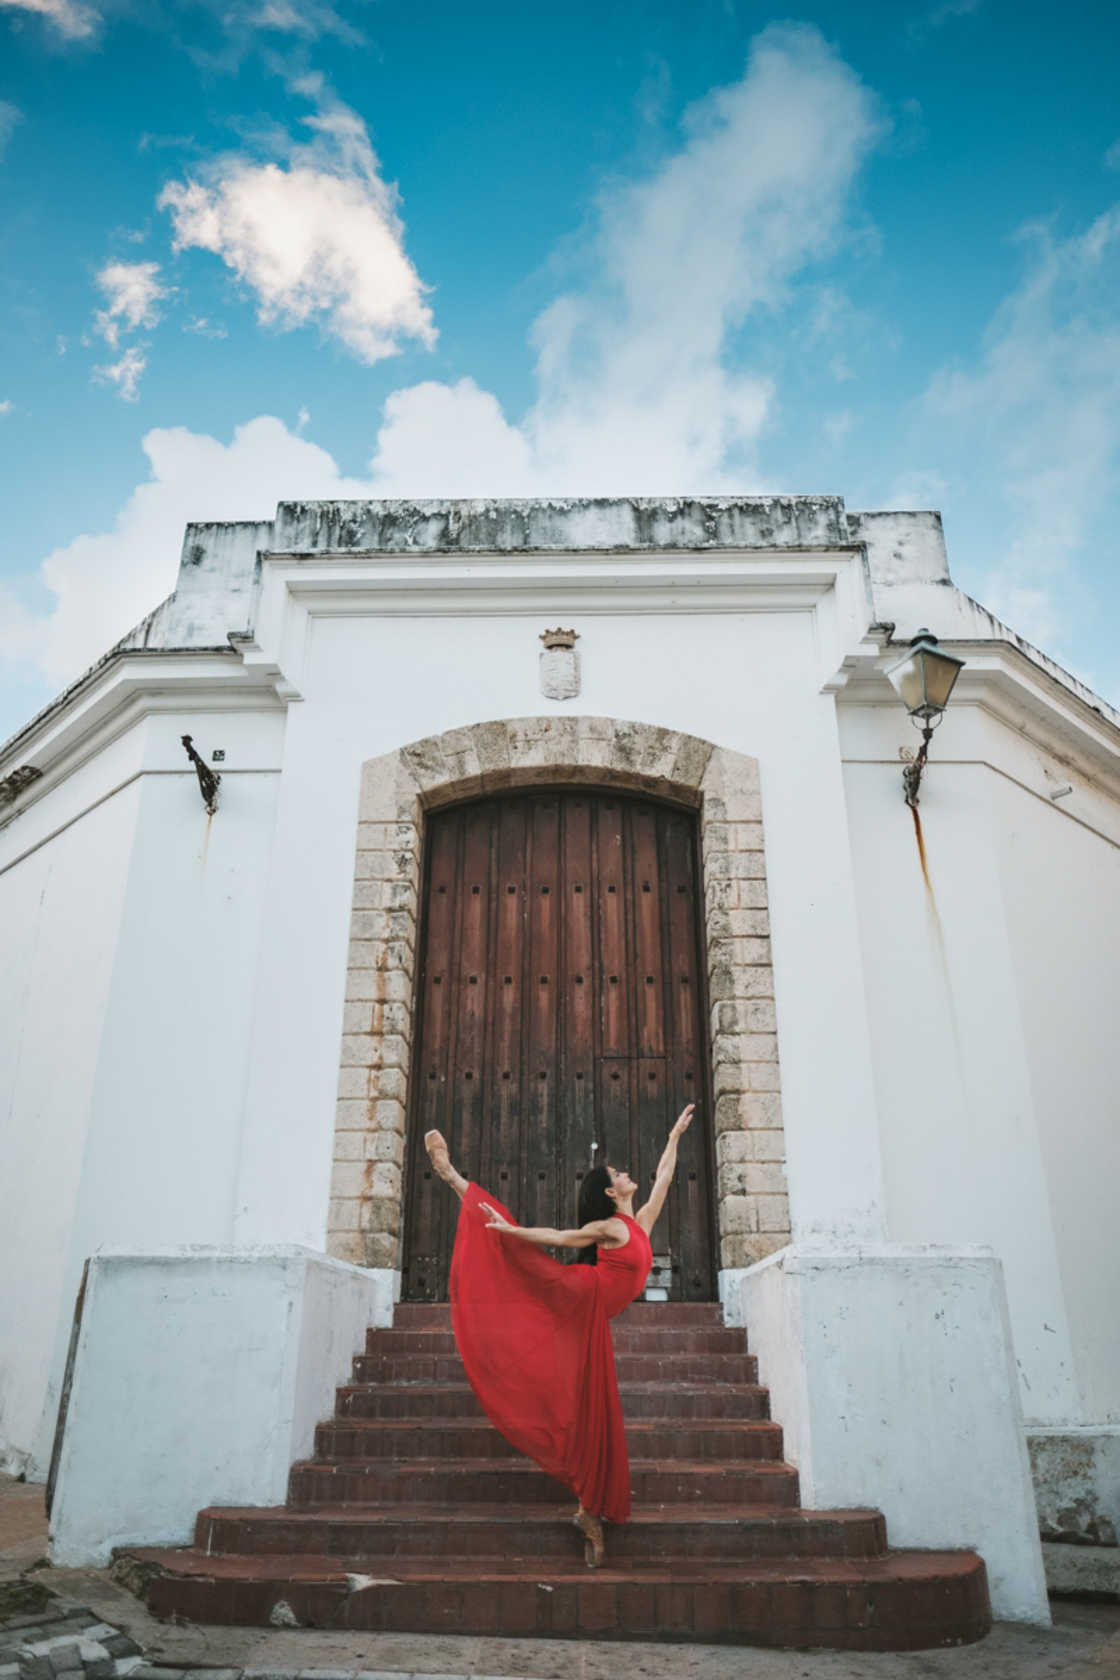 Dancing in Puerto Rico - The captivating dance photos of Omar Robles